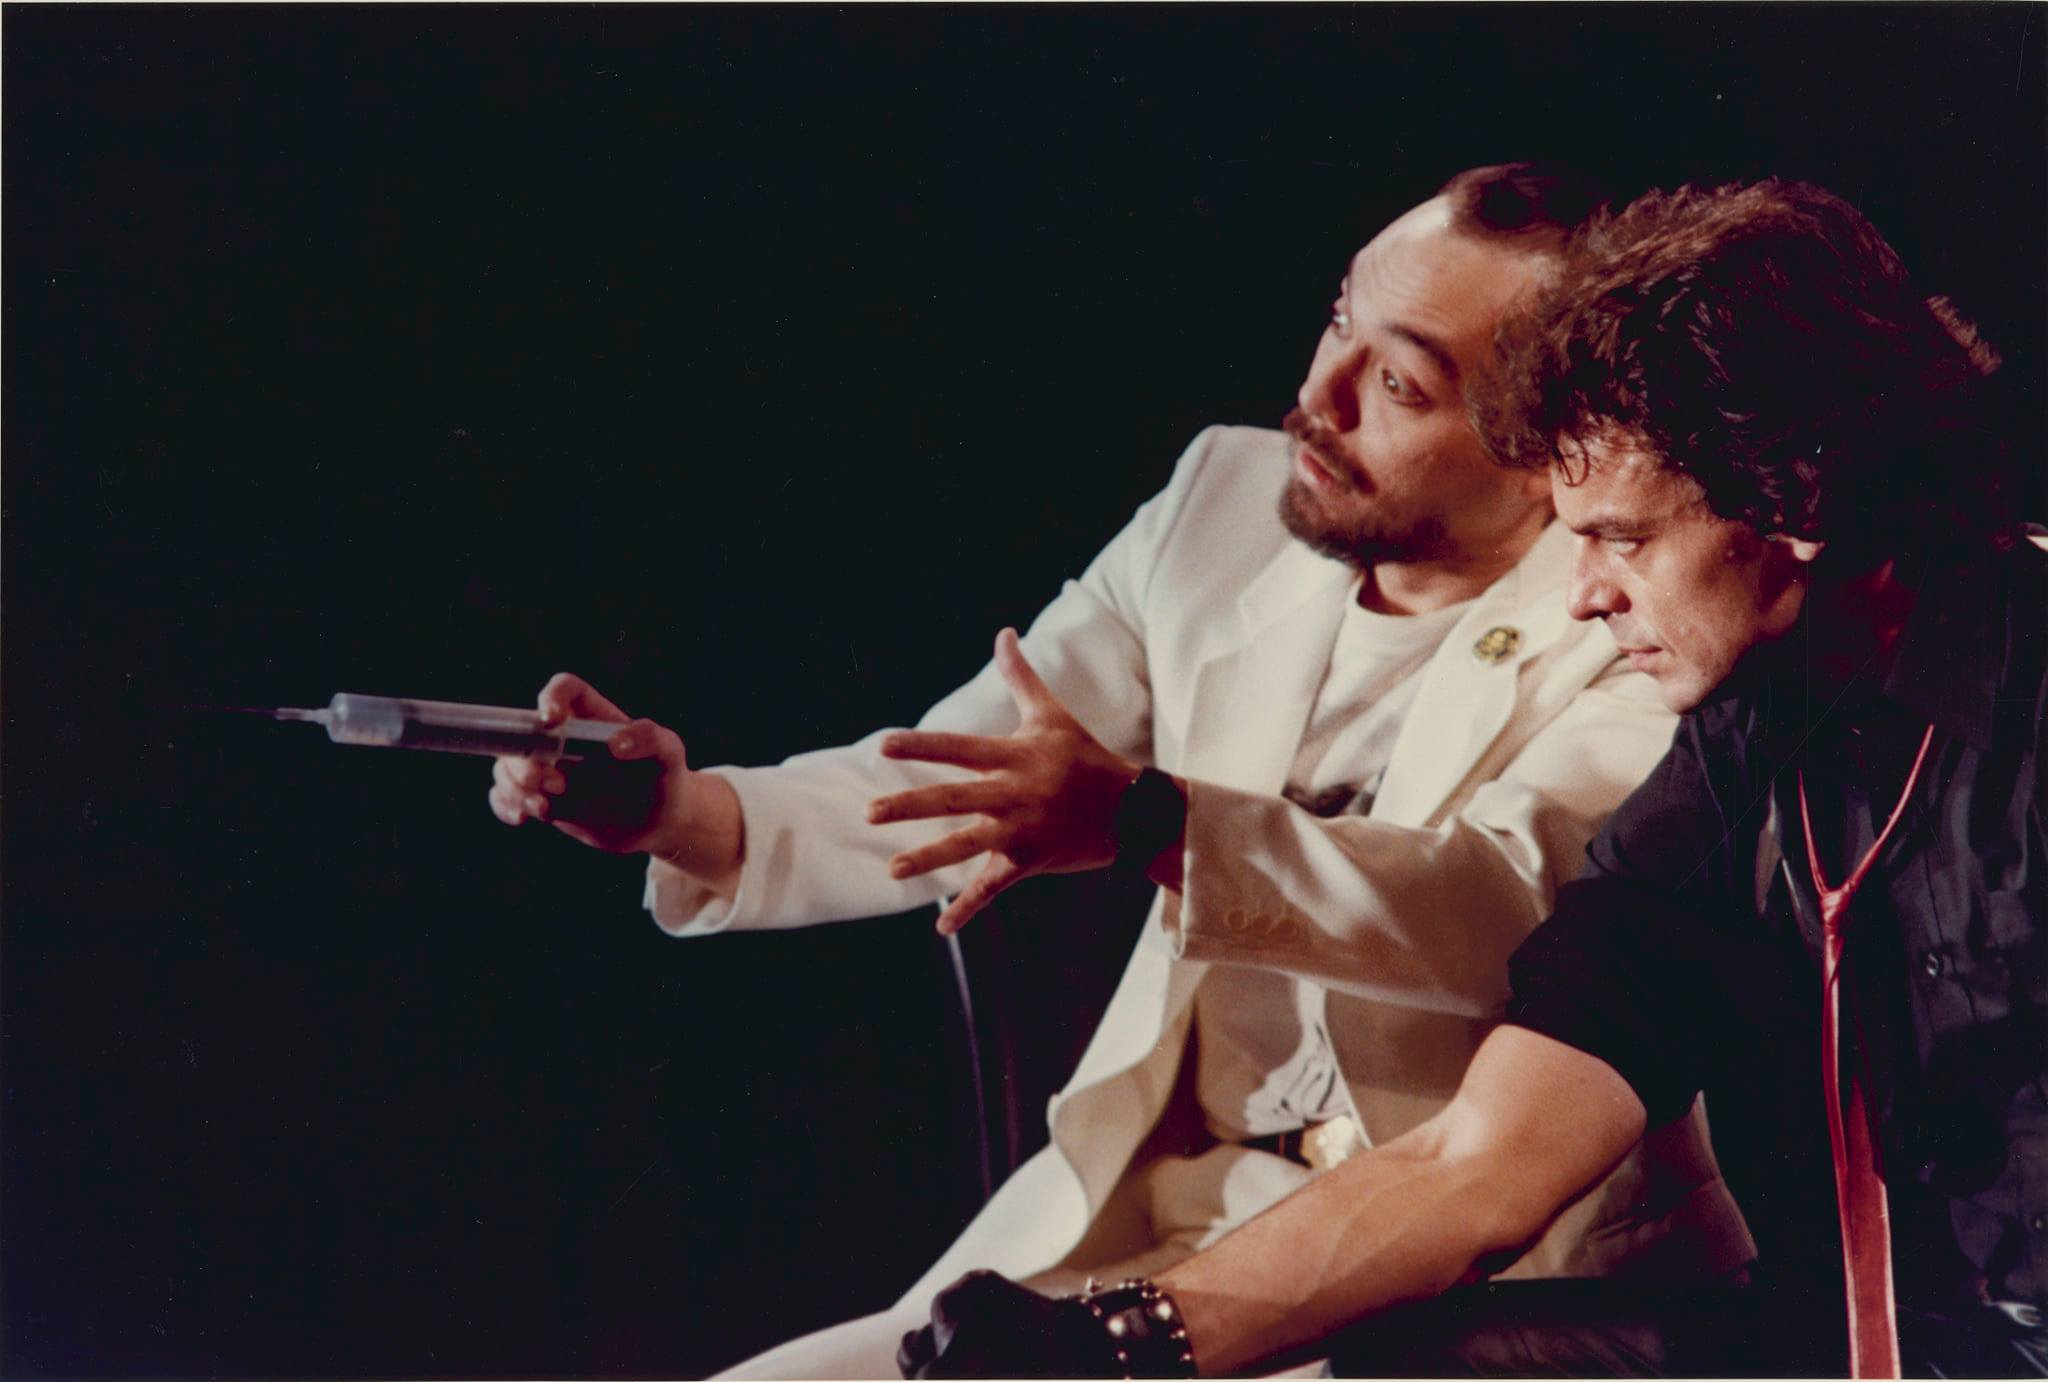 One actor (left) with a beard is wearing a white suit and holding a syringe, another actor (right) wearing a black shirt and red tie is looking at the syringe